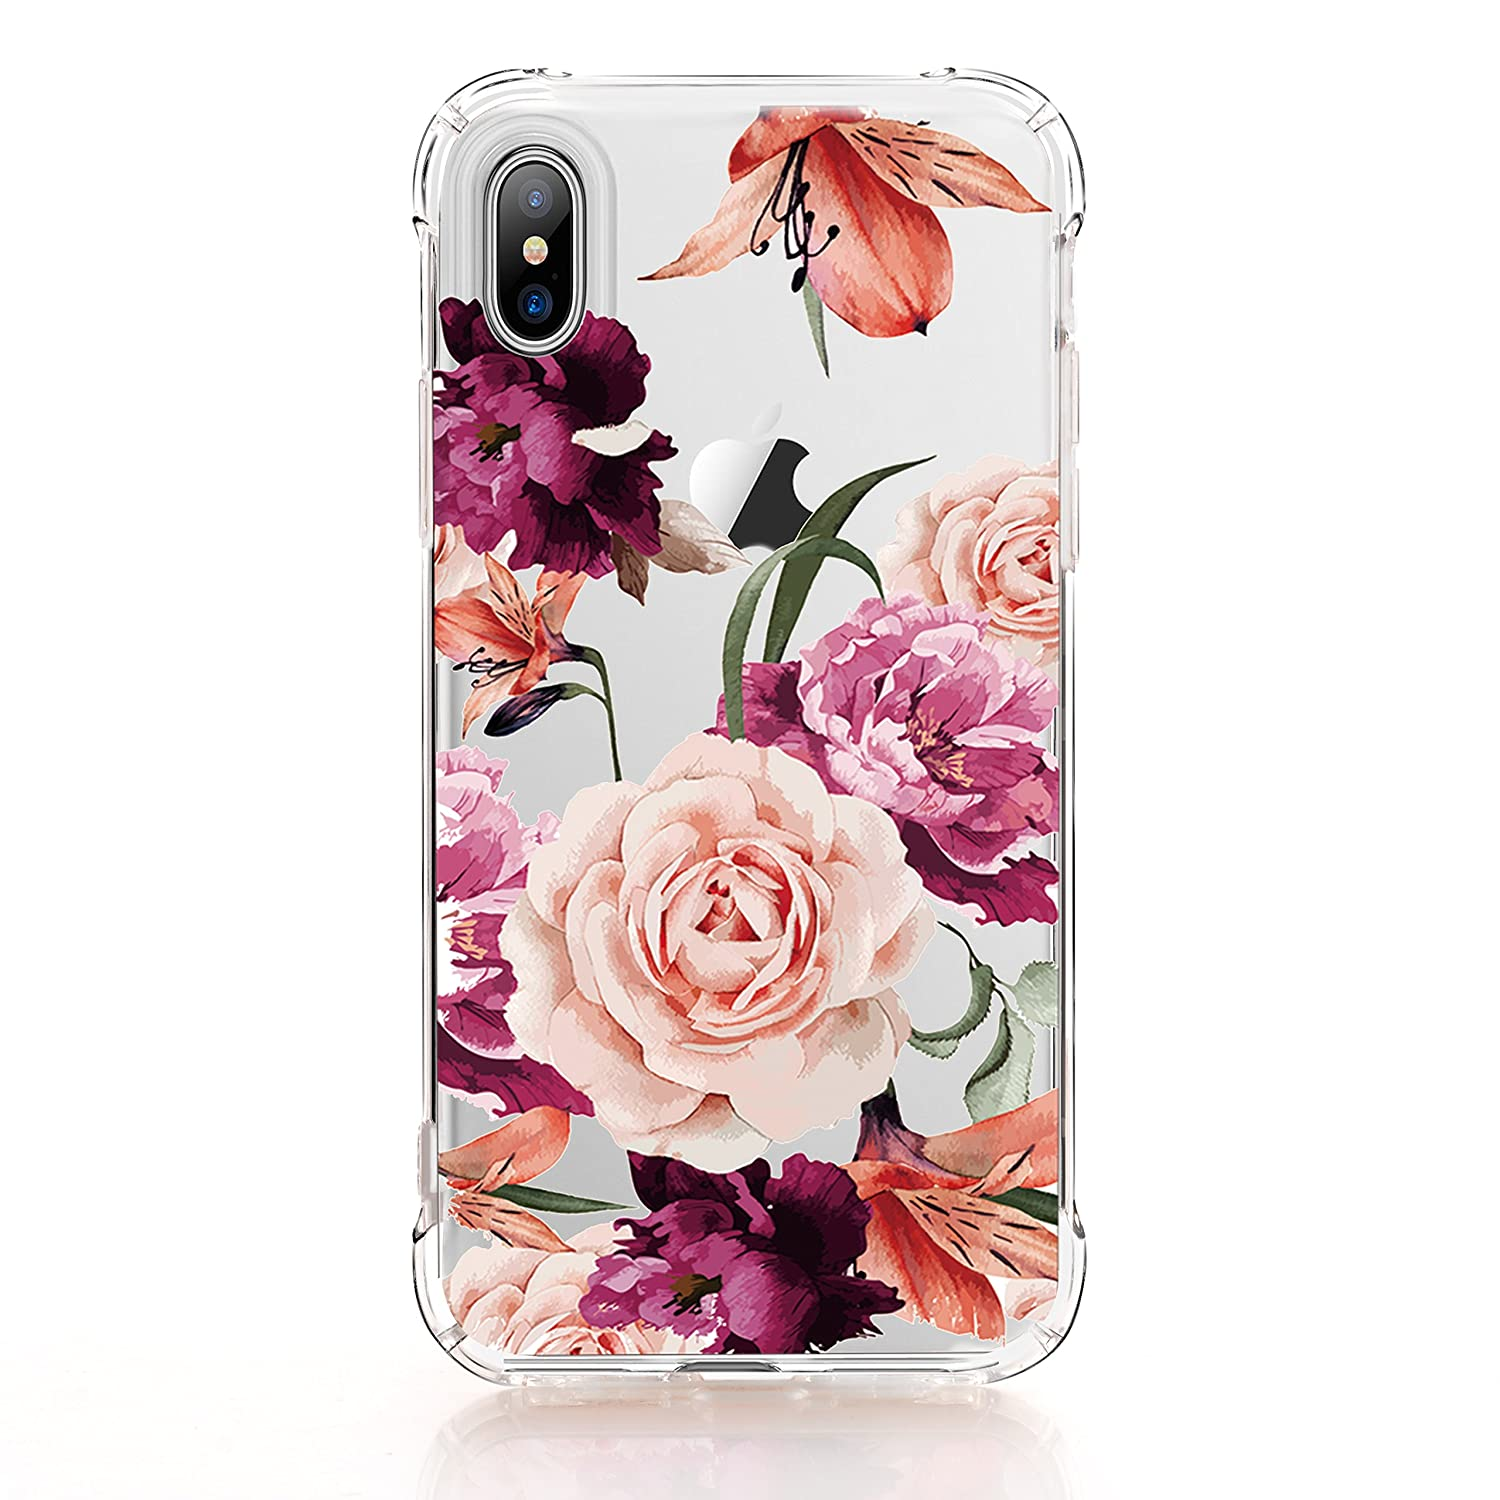 luolnh iPhone X Case,iPhone Xs Case with Flowers, Slim Shockproof Clear  Floral Pattern Soft Flexible TPU Back Cover case for iPhone X/iPhone Xs 5.8